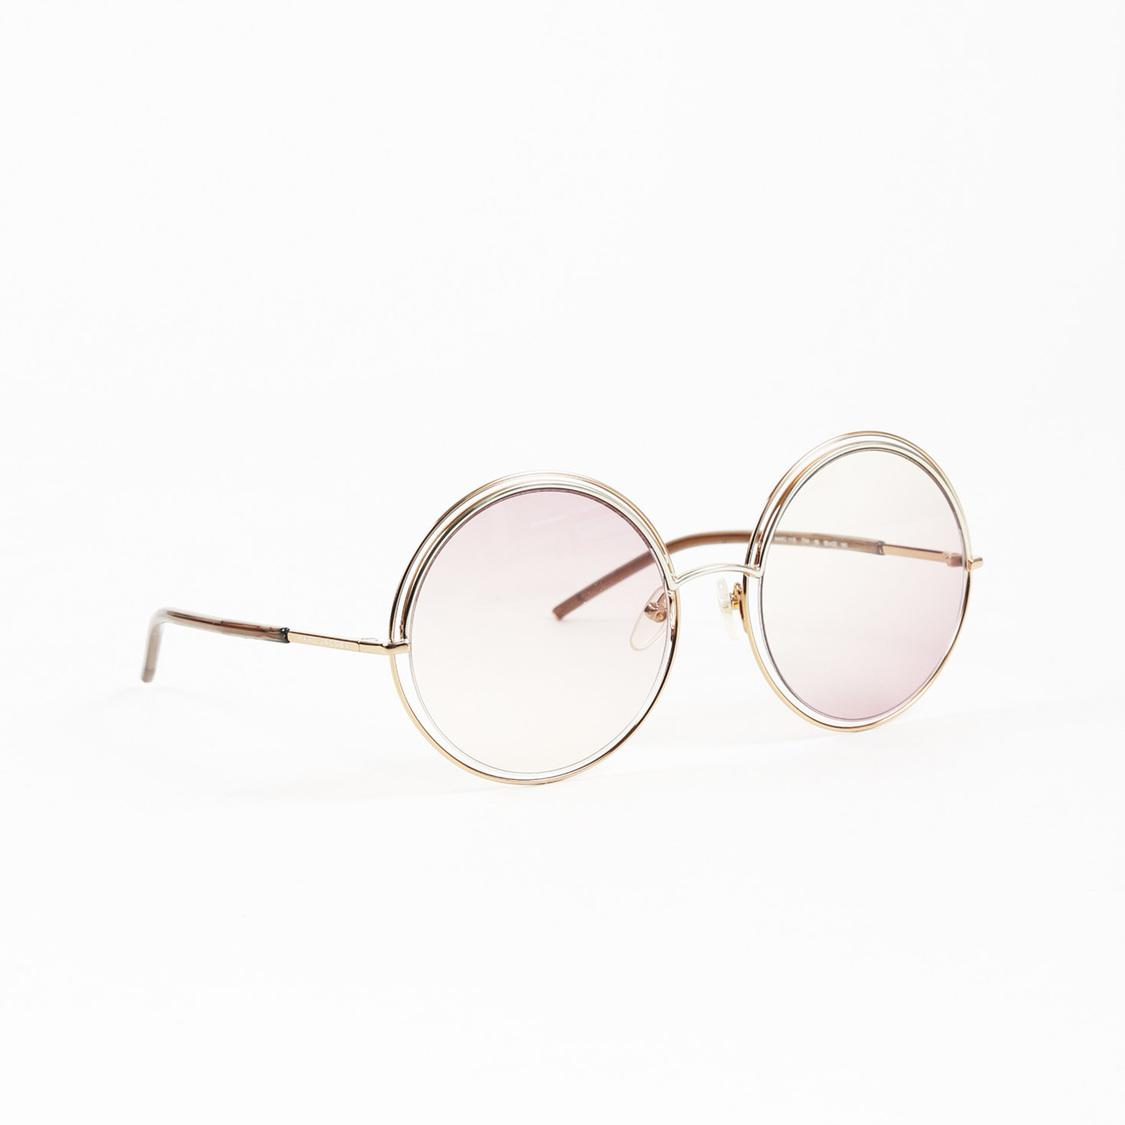 d28500f2ac1 Marc Jacobs Rose Gold Tone Metal Round Sunglasses in Pink - Lyst